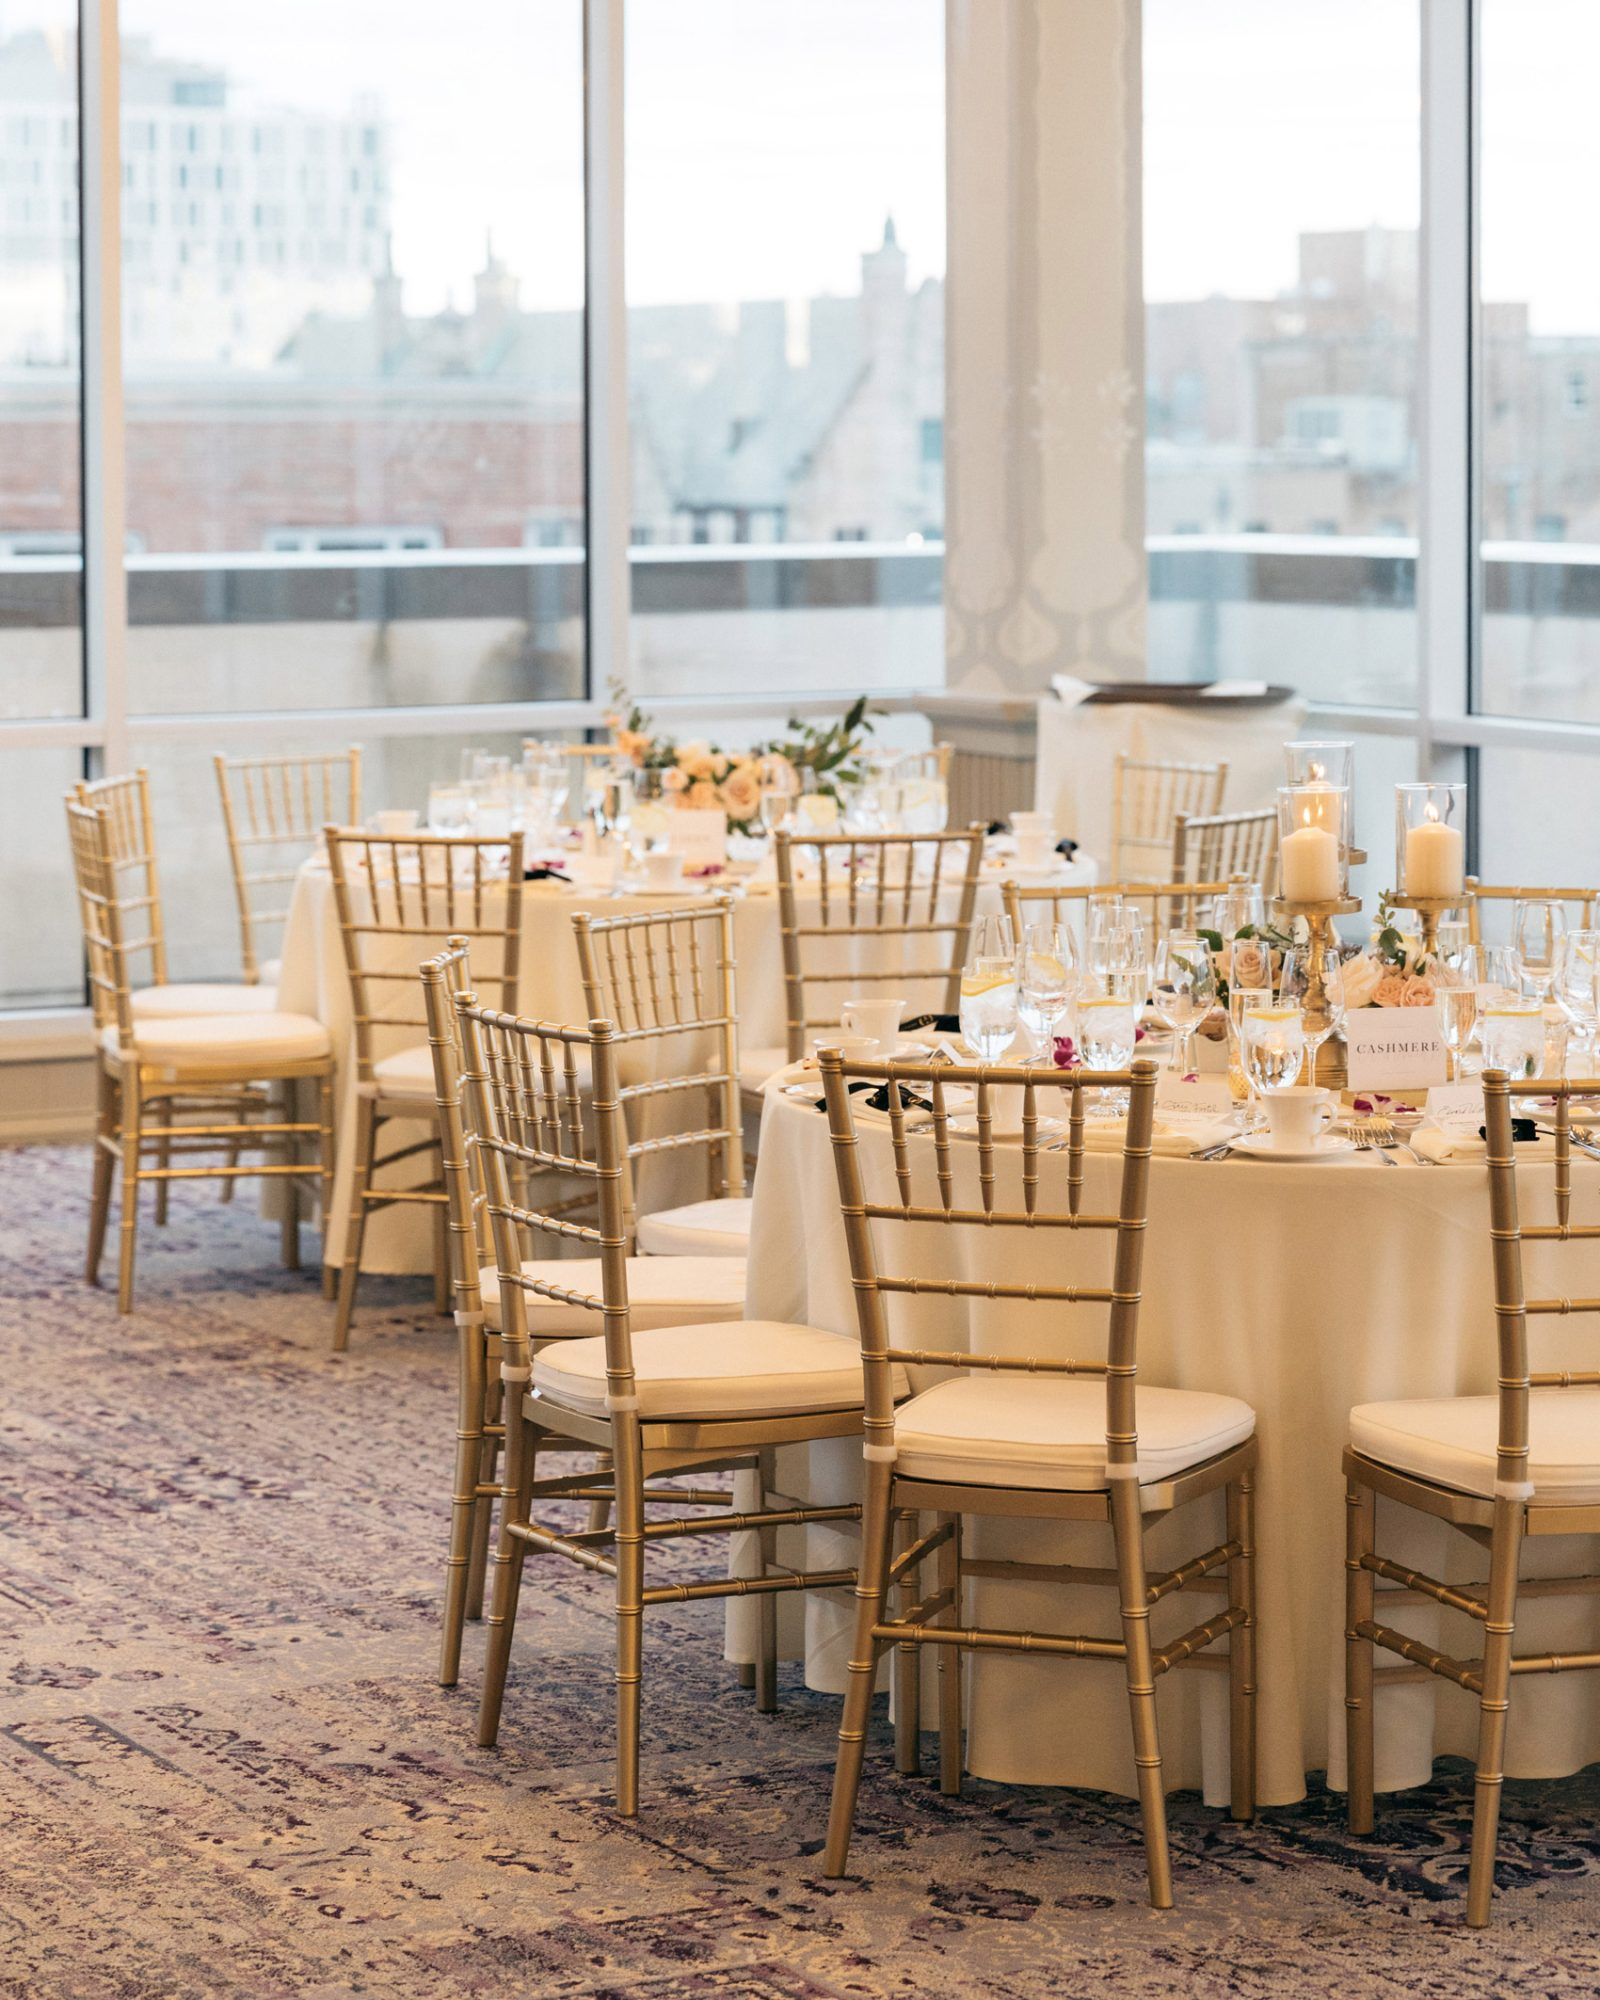 reception tables in corner floor to ceiling windows showing city